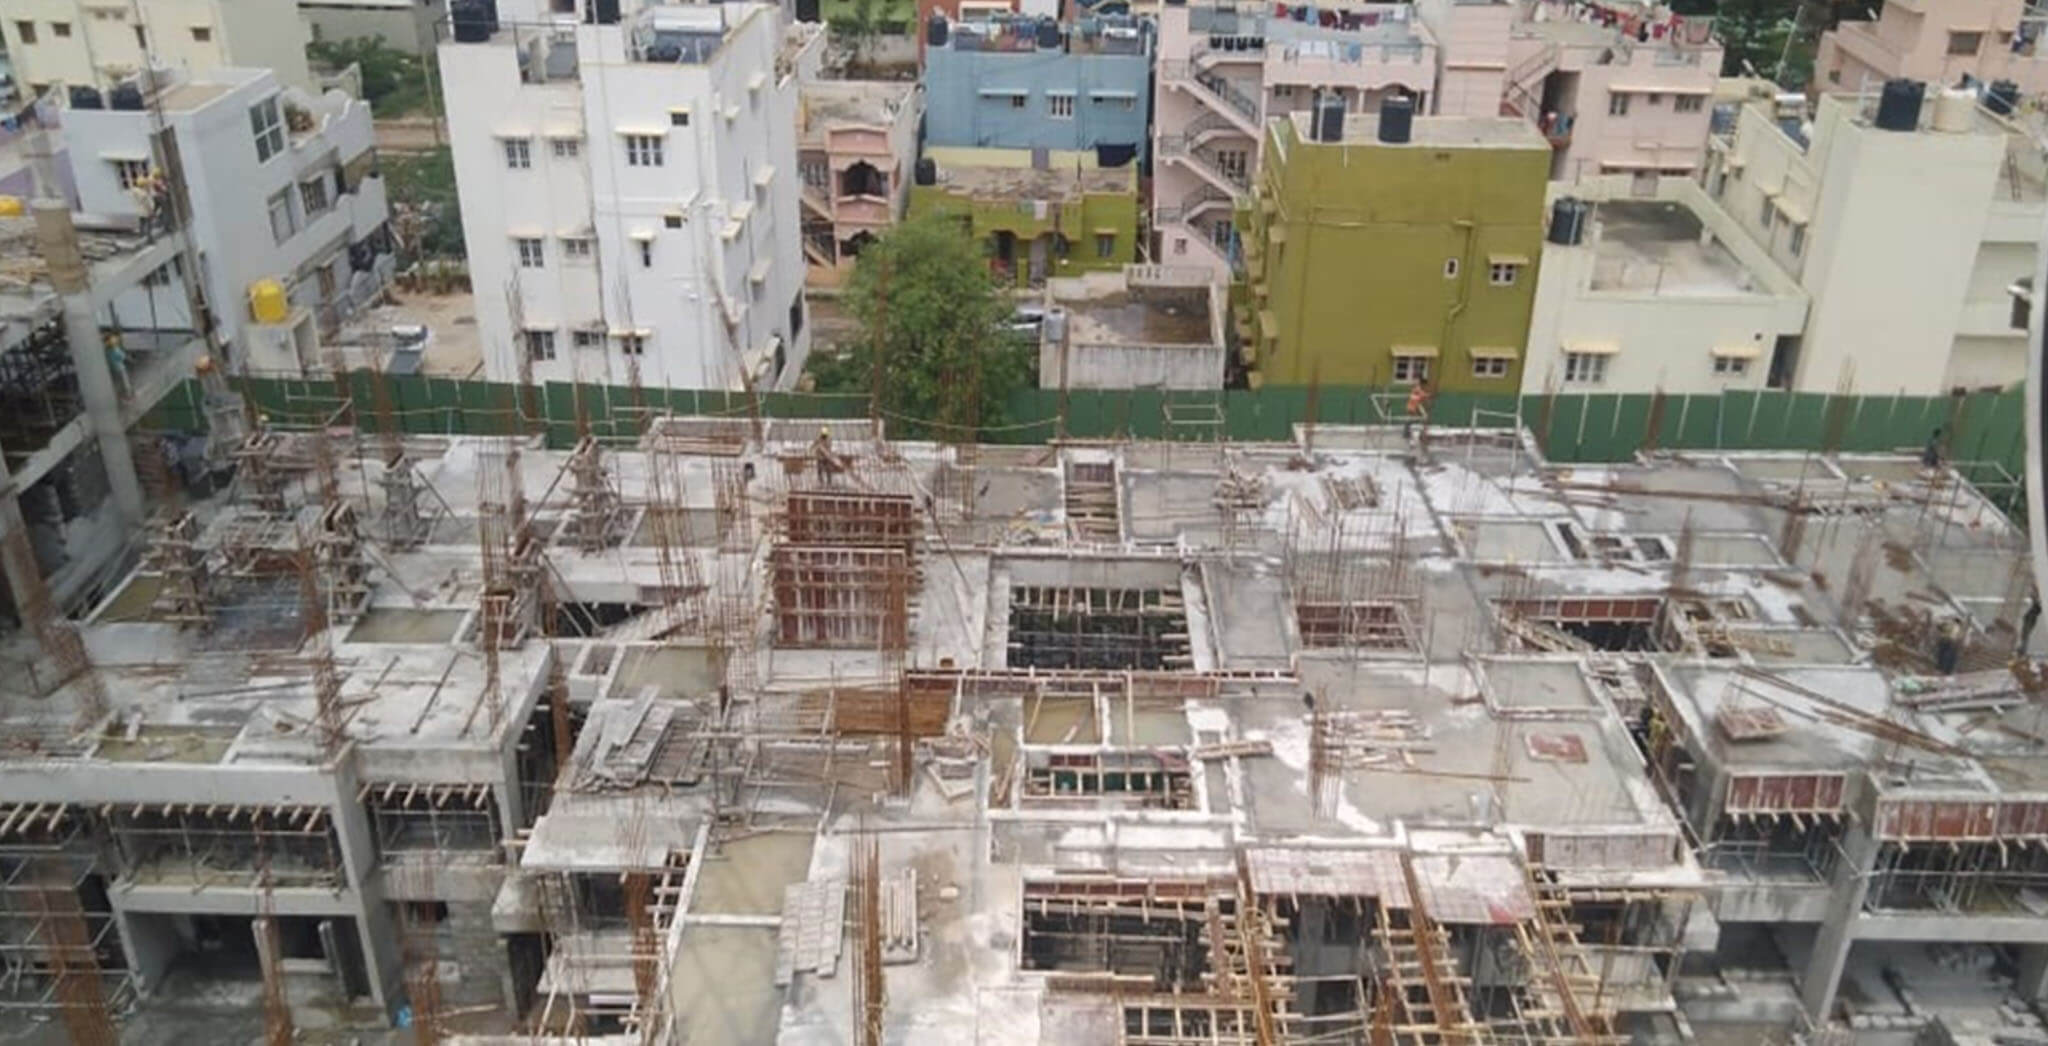 Oct 2019 - Wings O, P, J & I: 2nd floor concreting done; 2nd to 3rd floor columns work-in-progress